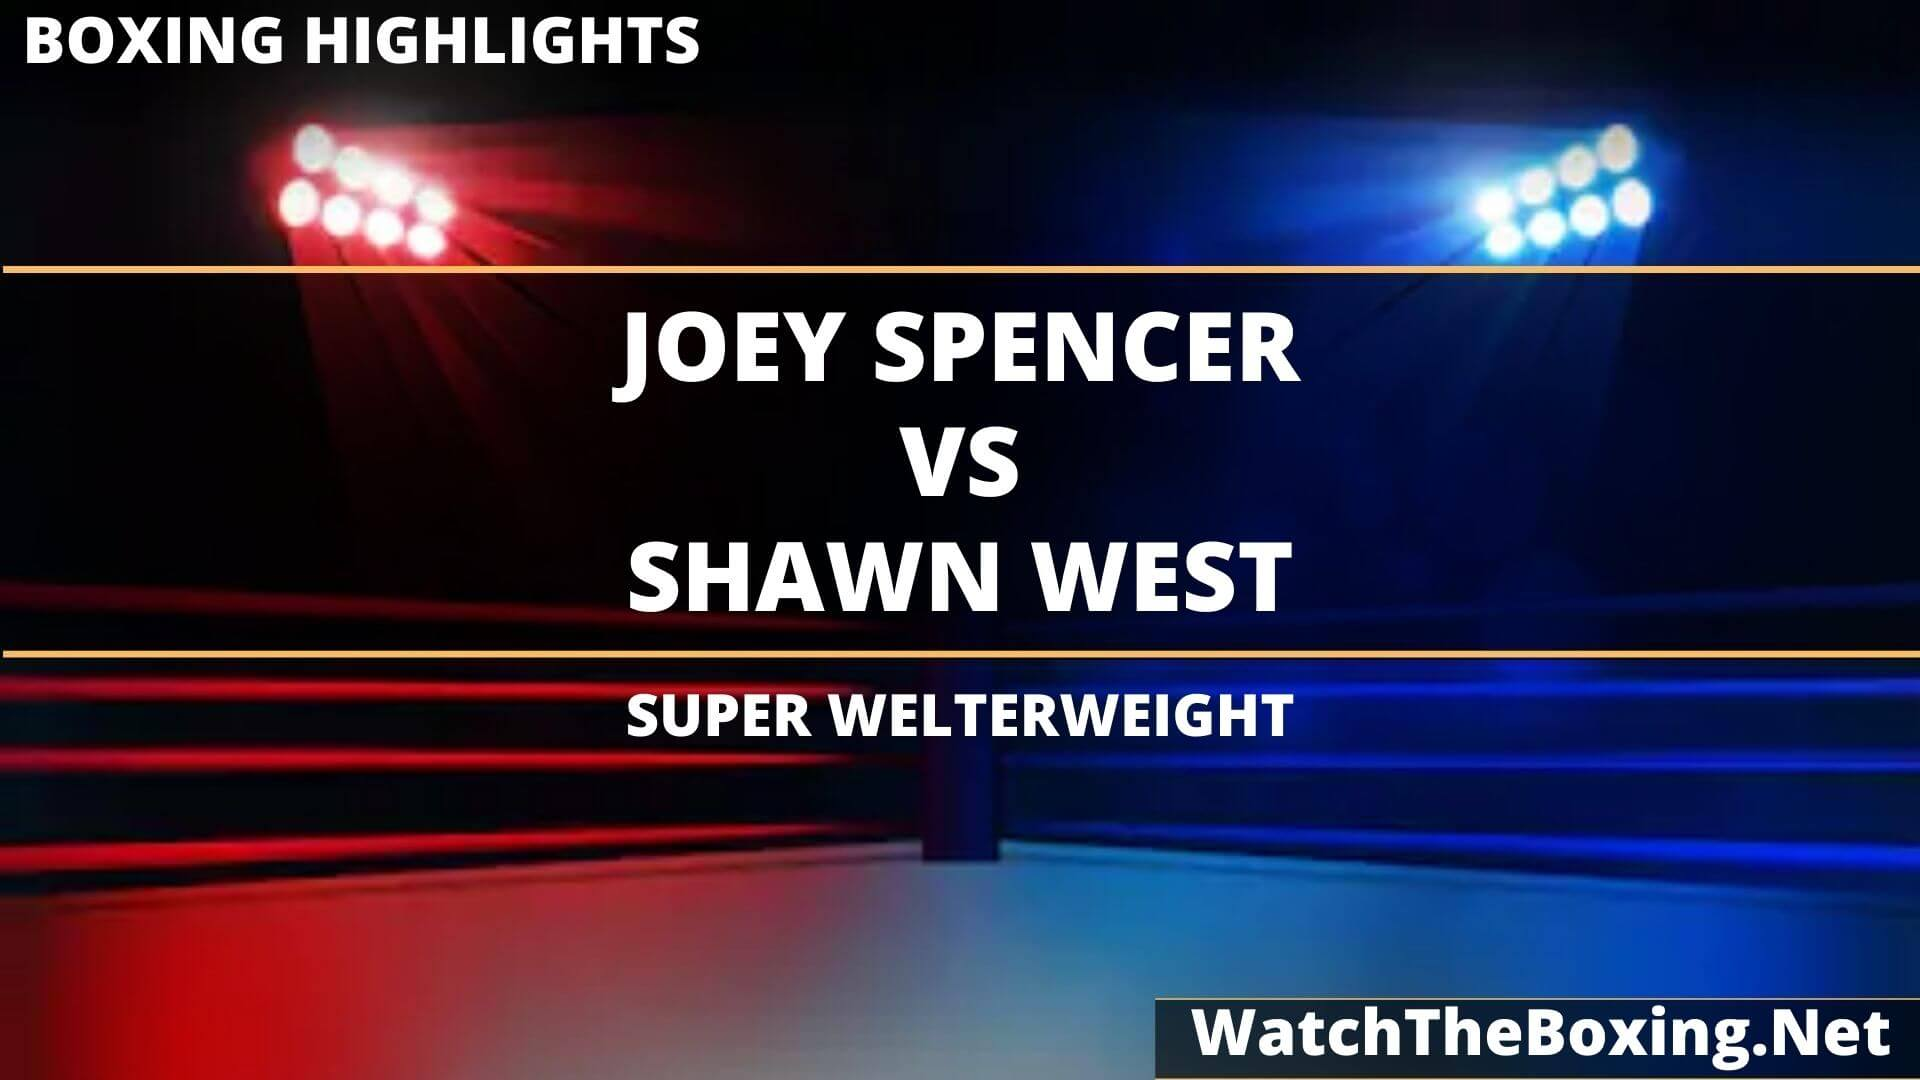 Joey Spencer Vs Shawn West Highlights 2020 Super Welterweight